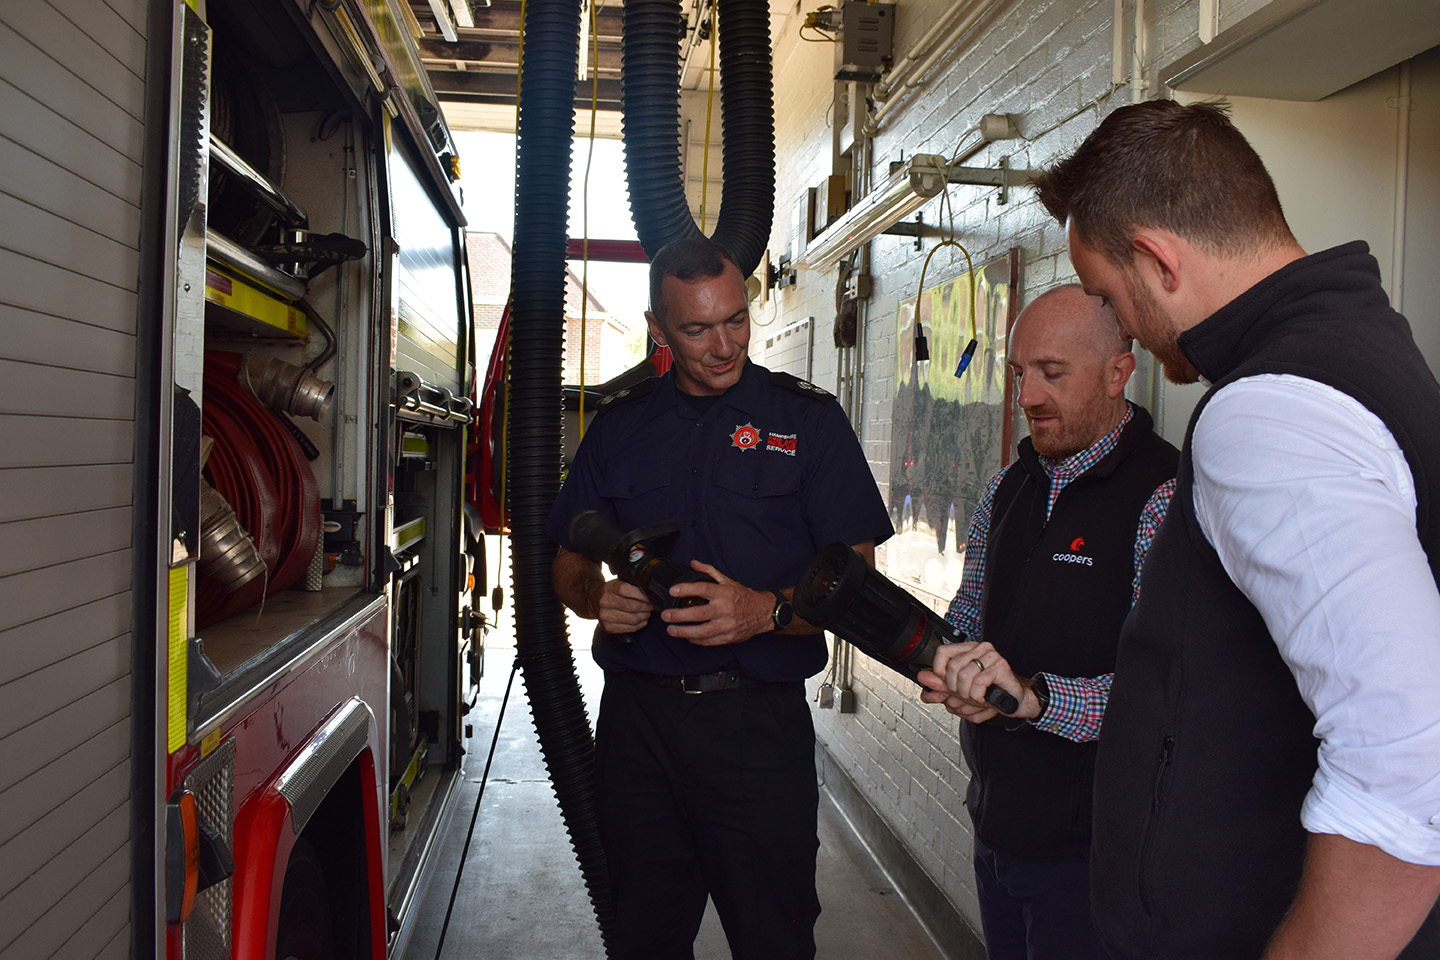 Coopers Fire Sat Havant fire station looking at different fire fighting equipment